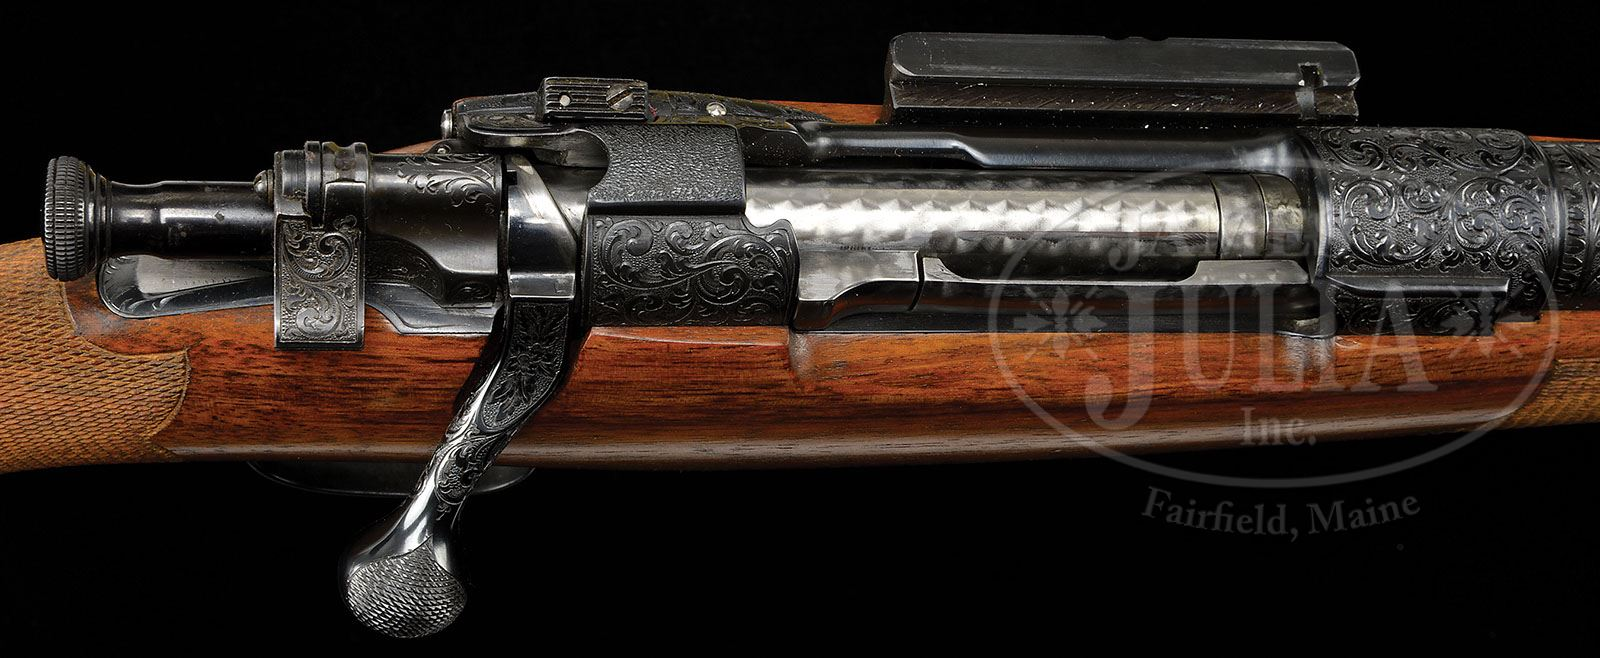 ENGRAVED AND GOLD INLAID 1903 SPRINGFIELD, MARKED R  G  OWEN